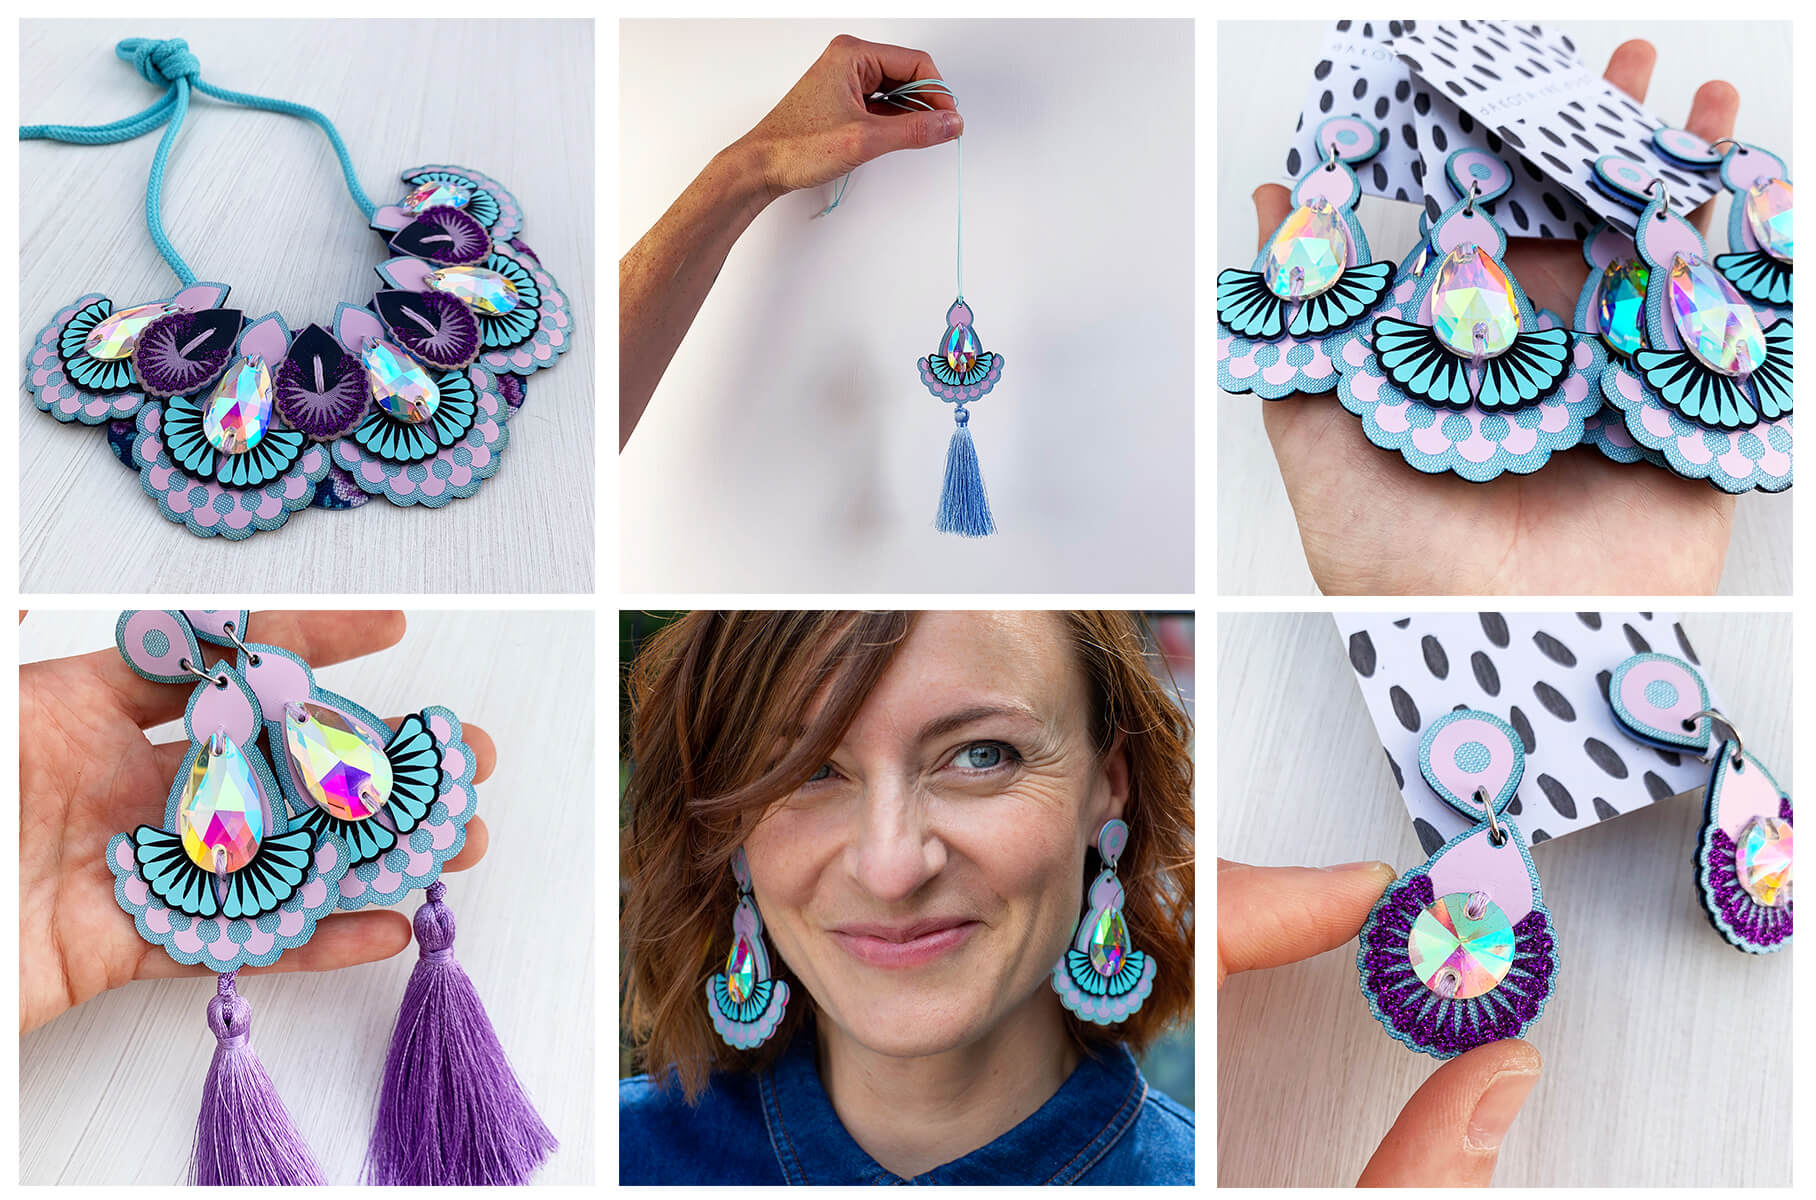 A block of six photos. Each one shows a piece of lilac and light blue laser cut jewellery. A large bib necklace, a tassel pendant necklace held in a white hand against a plain white wall, a close up of a hand holding a selection of jewelled earrings, a pair of tassel earrings held in a white hand, a white woman with brown hair wearing the same jewelled earrings and a smaller pair of lilac and light blue earrings are held between a woman's thumb and fore finger against a white background.